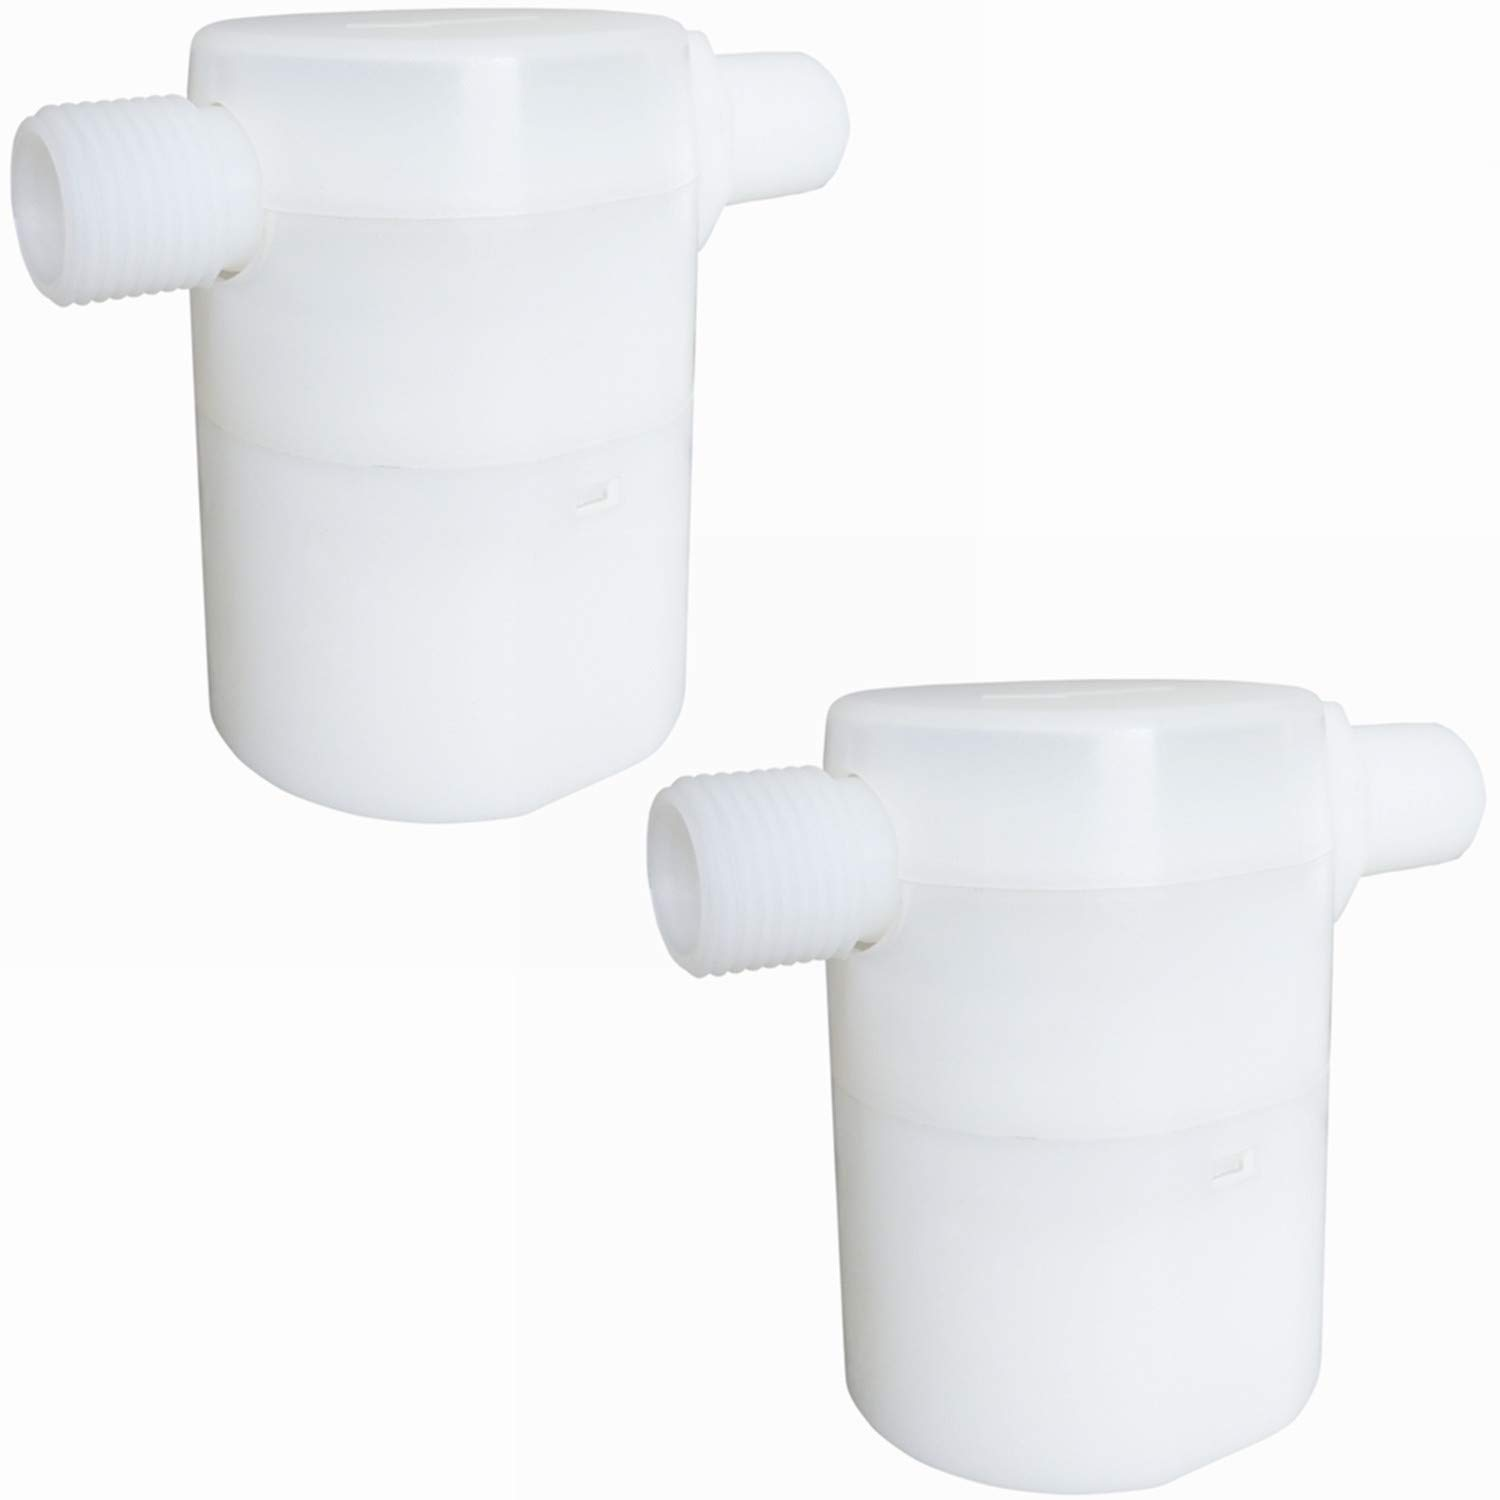 1//2 Water Float Valve Side Inlet Water Level Control Water Tank Traditional Float Valve Upgrade 2 PCS